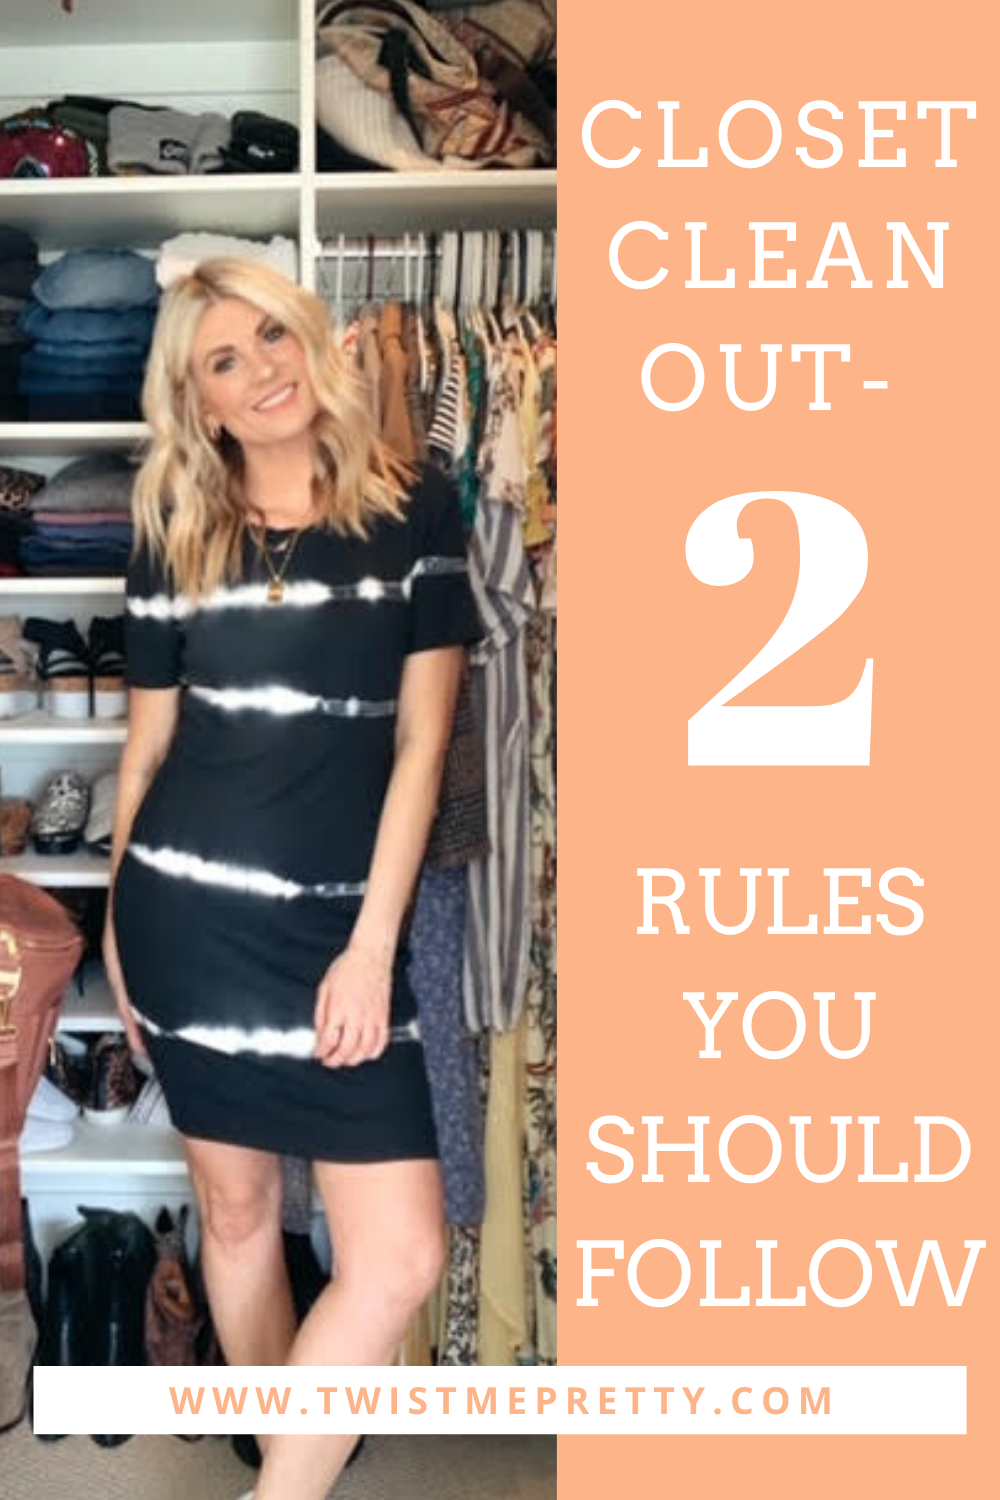 Closet clean out- 2 rules you should follow. www.twistmepretty.com